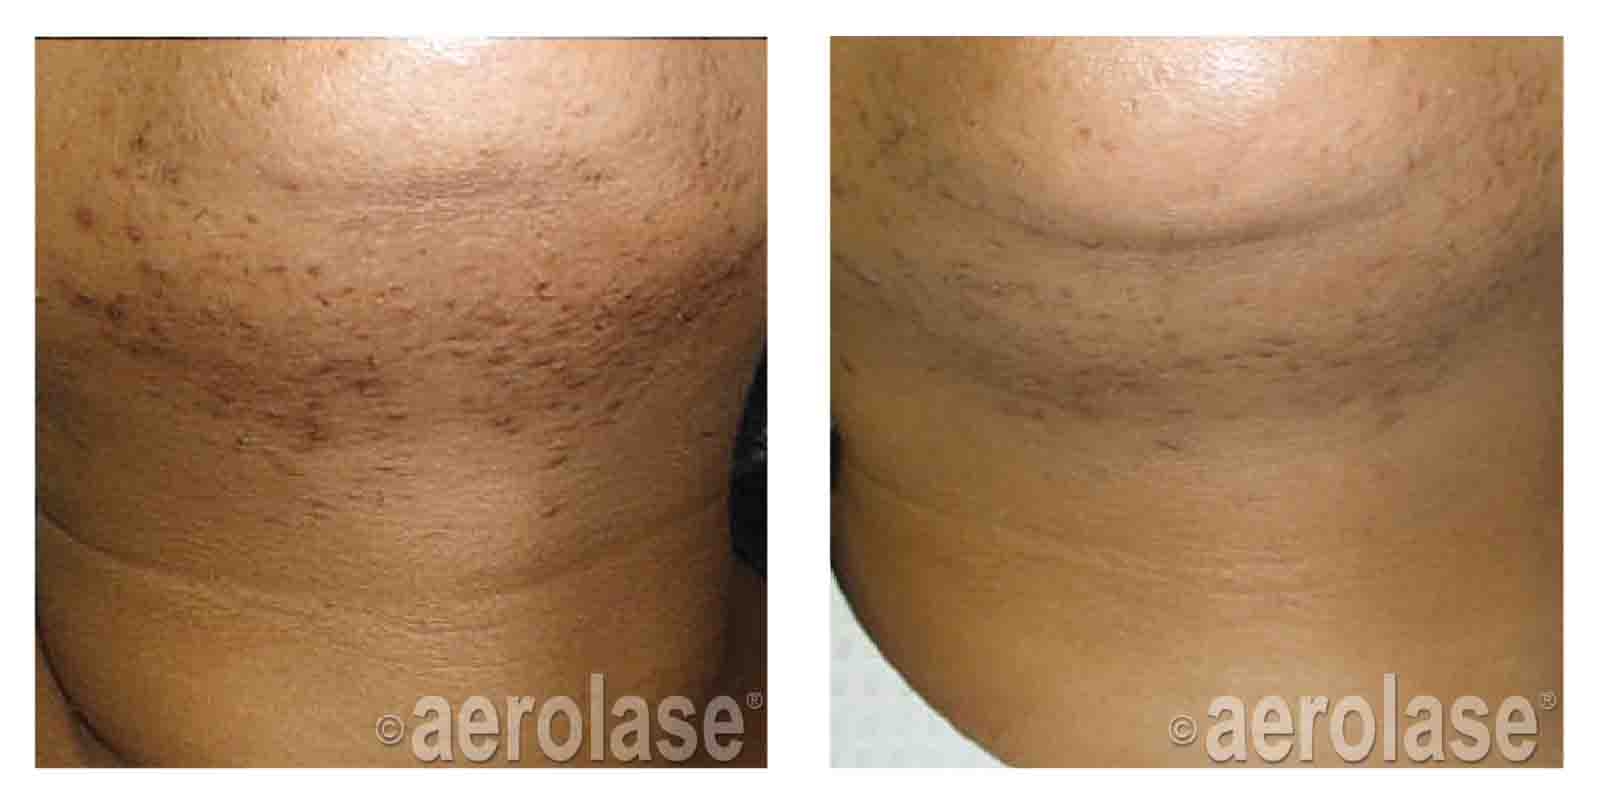 Small Area Laser Hair Removal Portland Or Redimedi Laser Skin